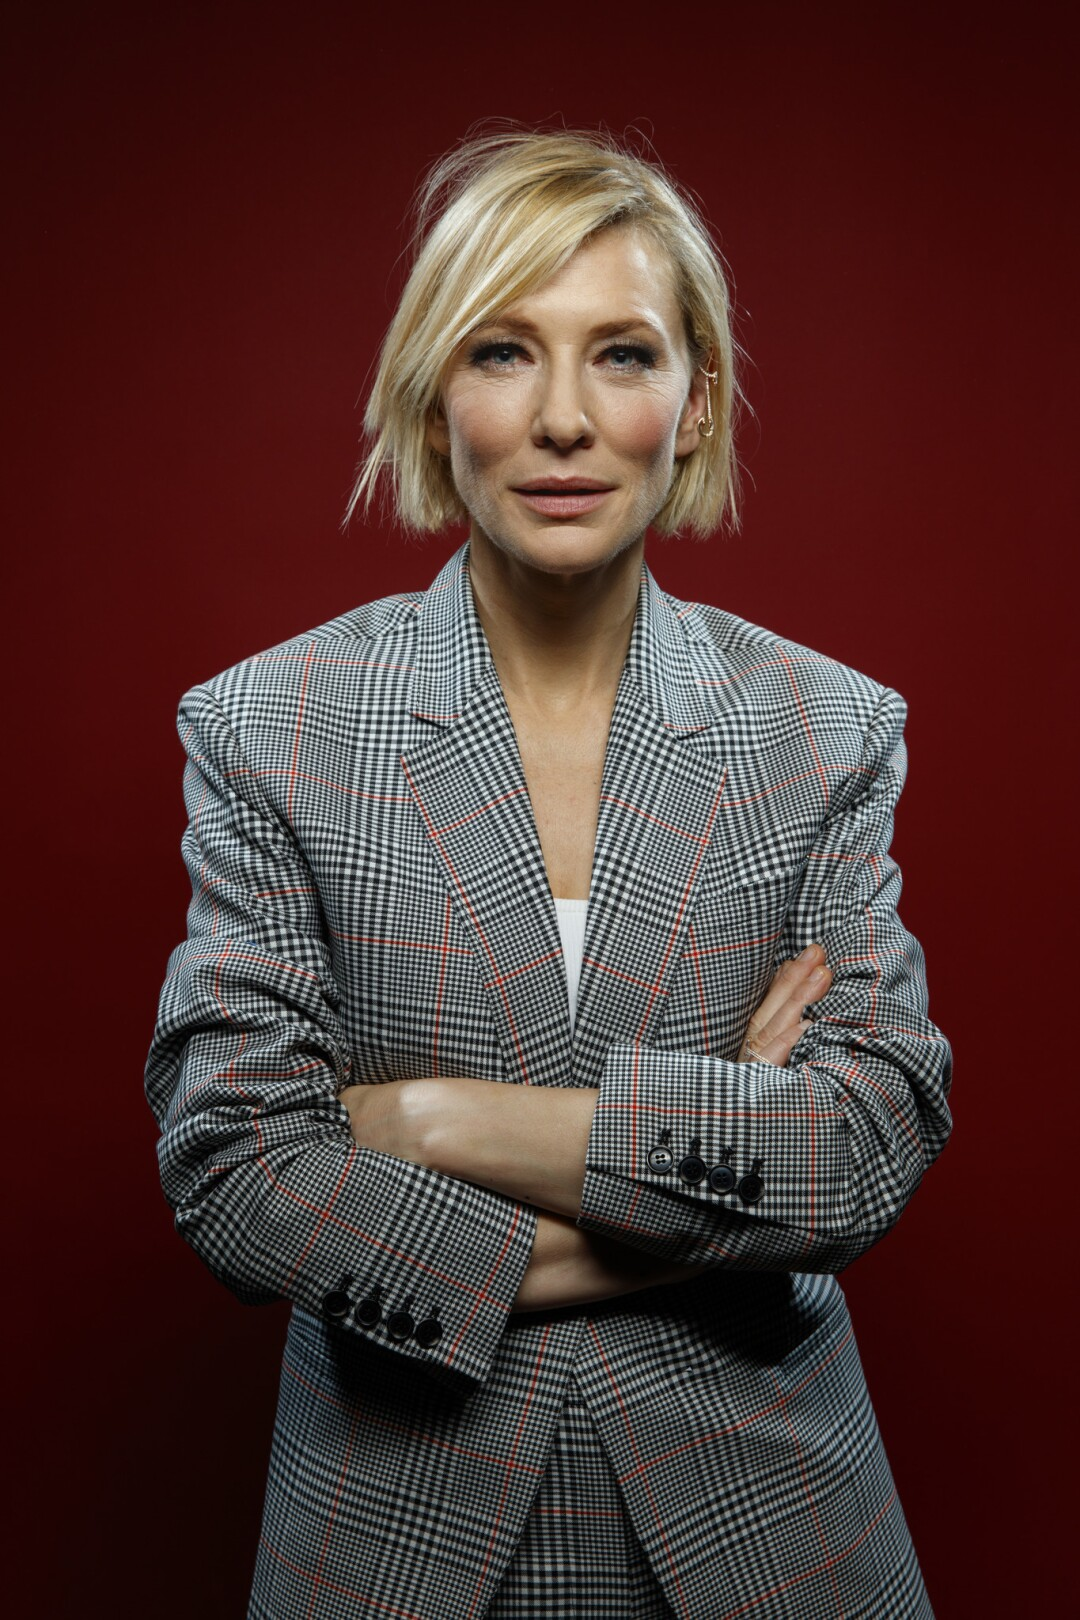 """Cate Blanchett, from the film """"Thor: Ragnarok,"""" photographed in the L.A. Times photo studio at Comic-Con 2017."""